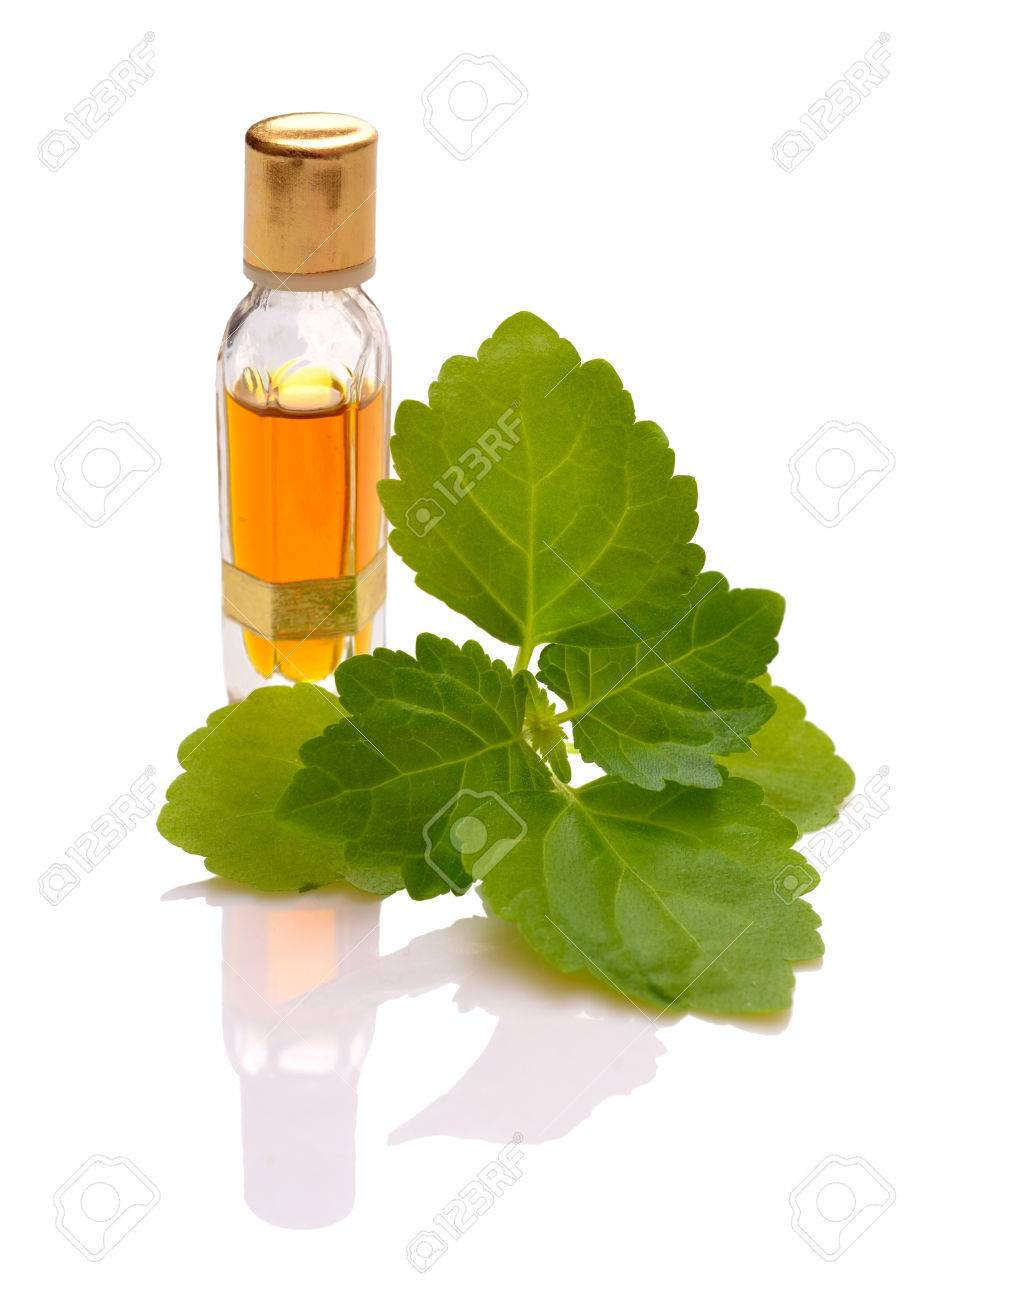 Patchouli sprig with essential oil. Isolated with reflection on white background. - 61674179